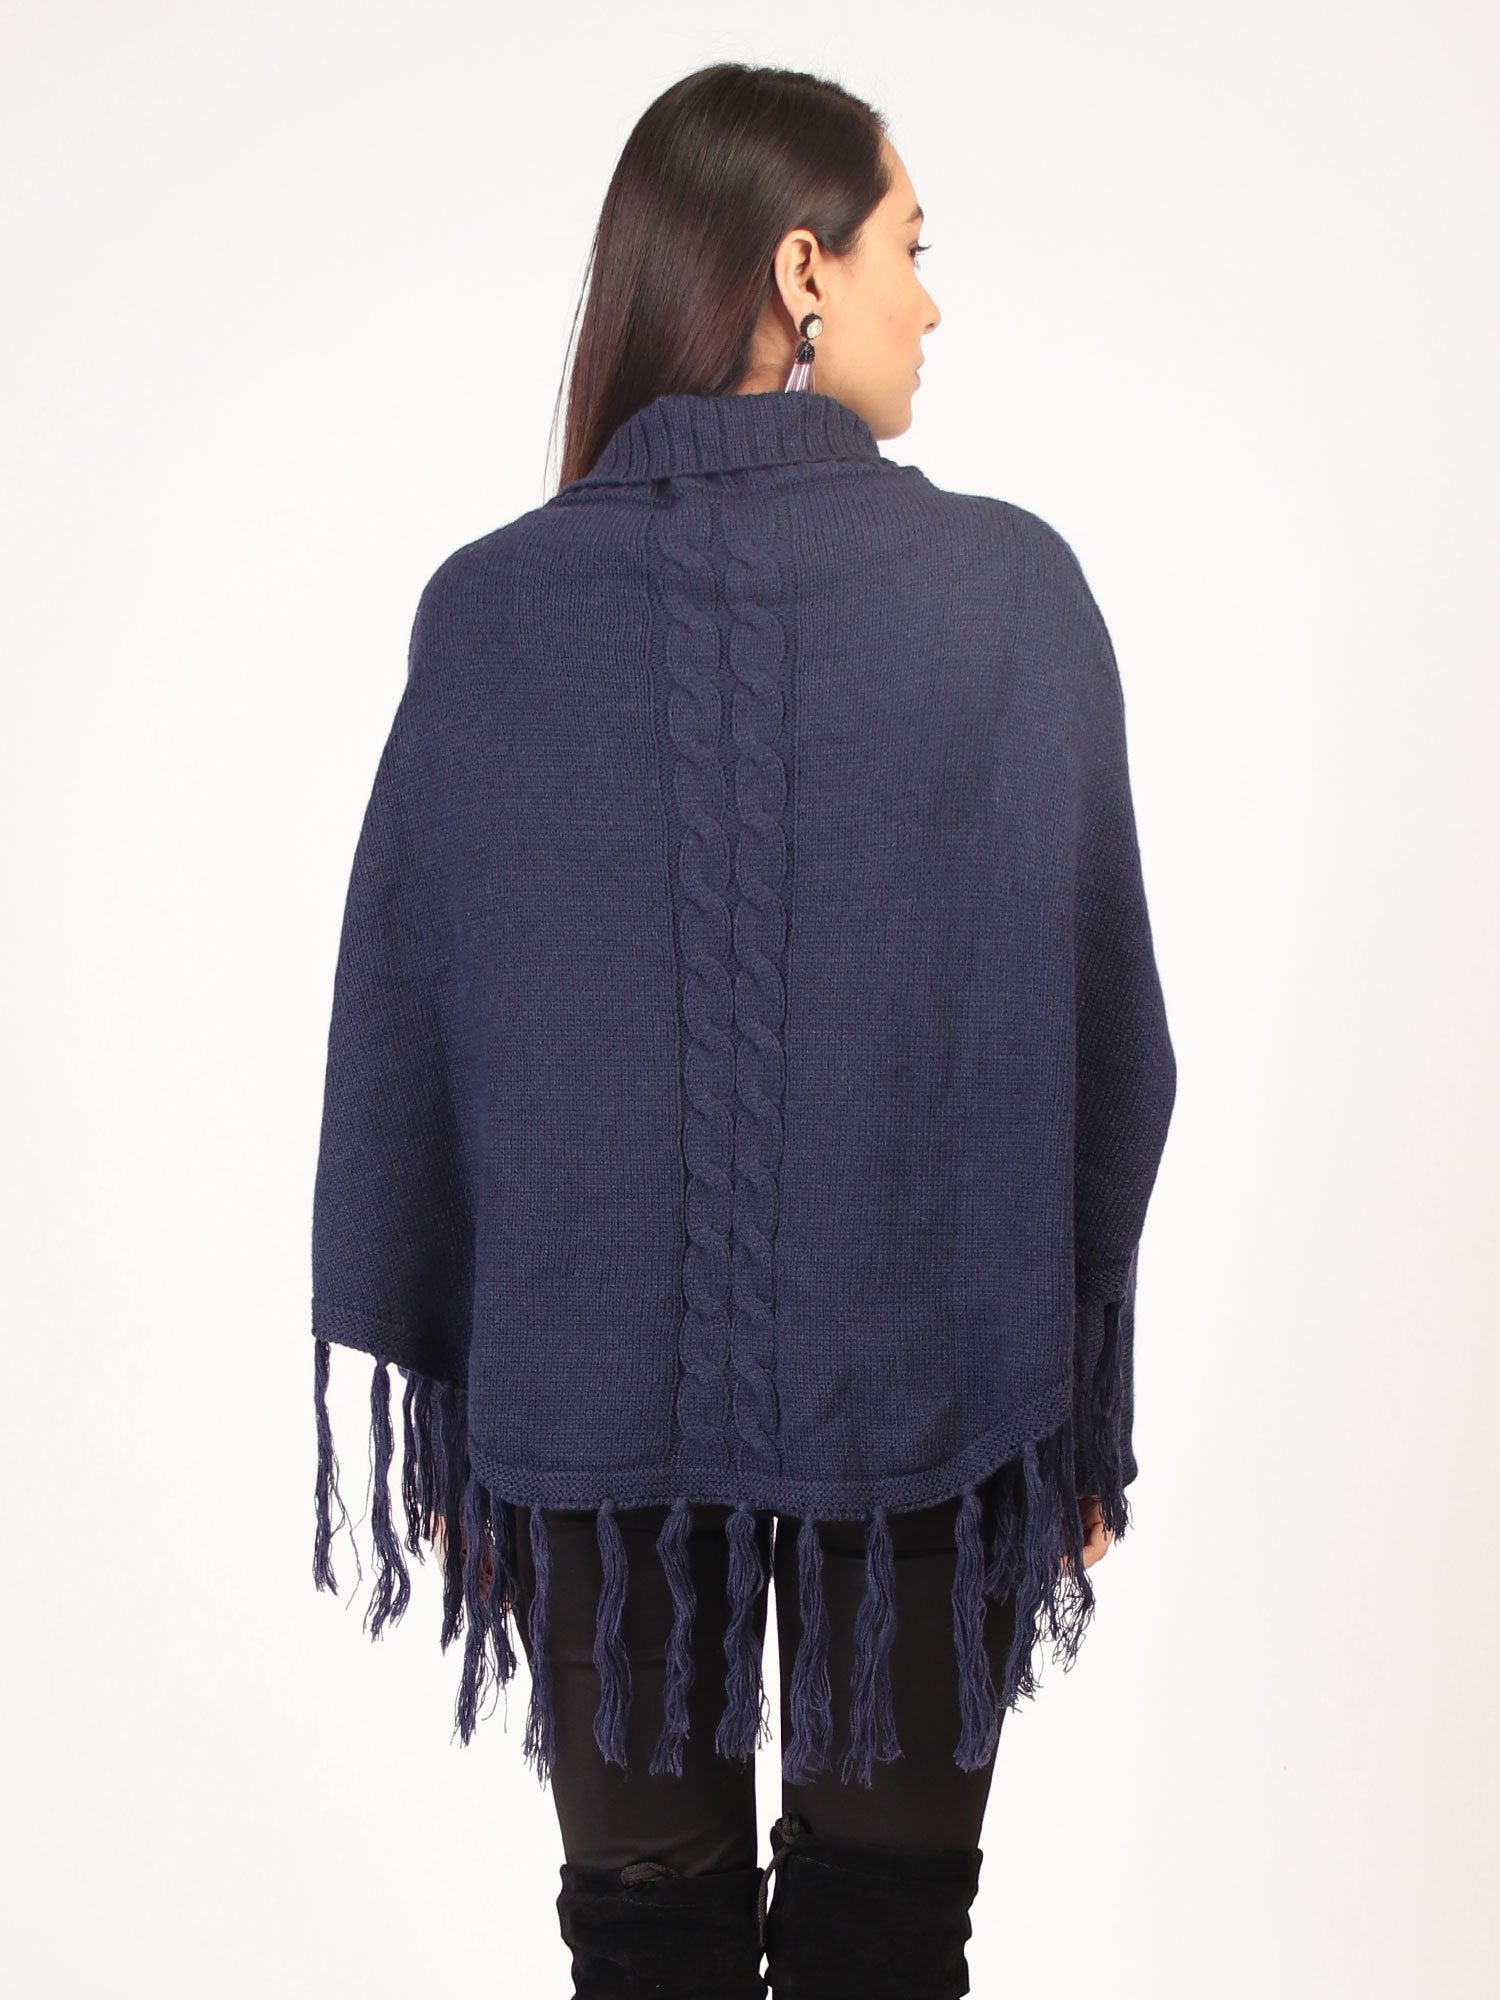 Poncho With Tasssles Navy Blue